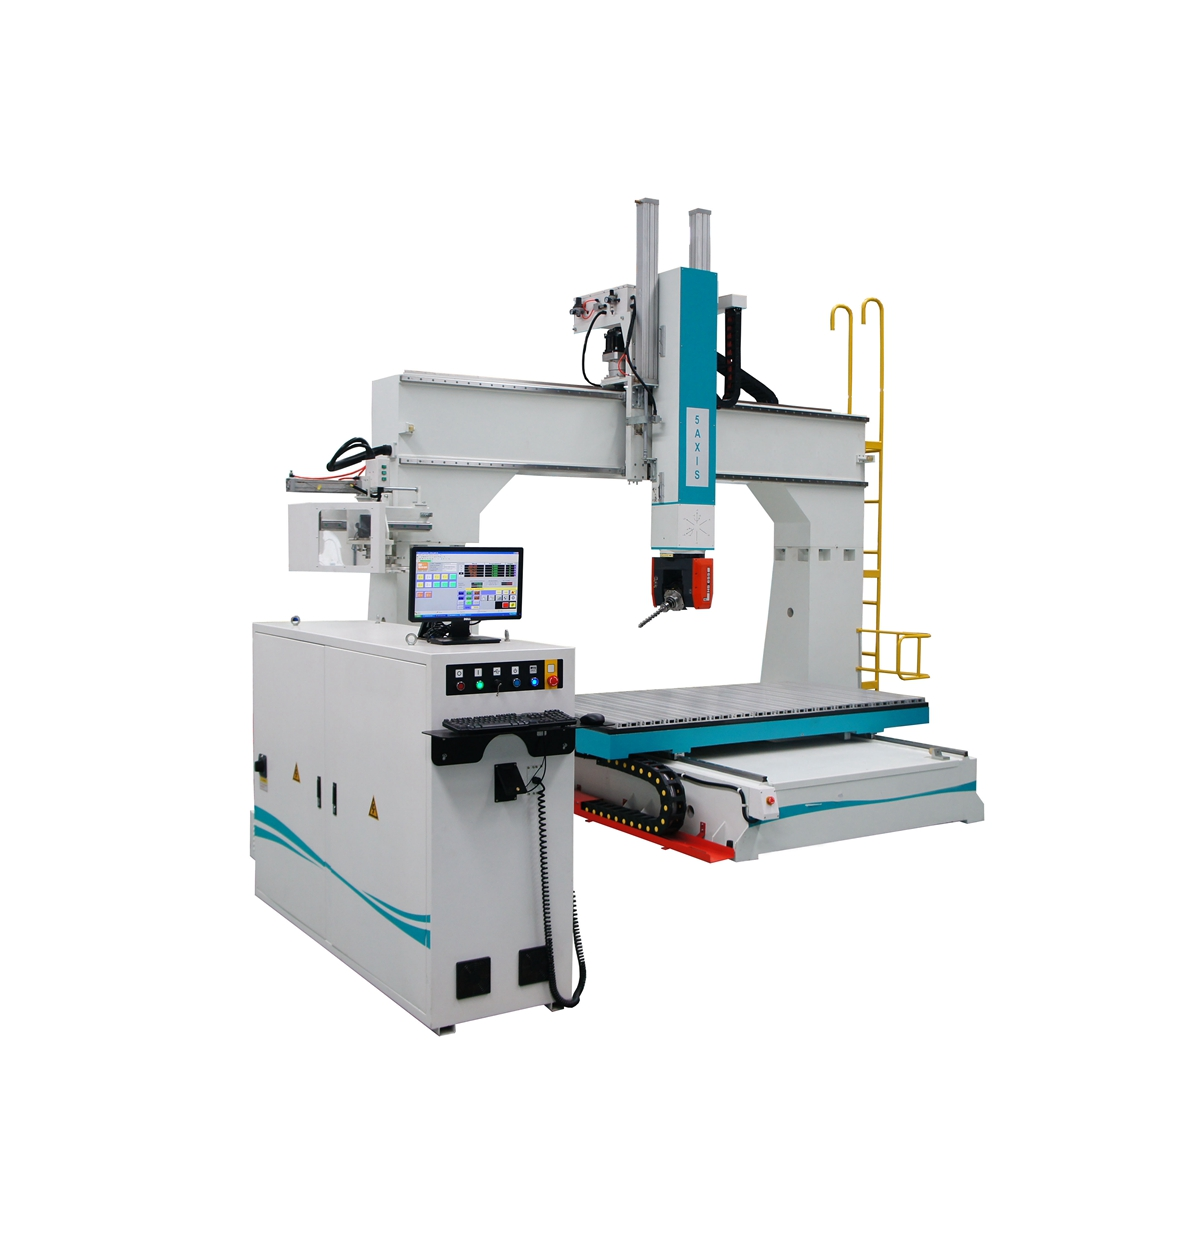 360 degree spindle heads rotation 5 axis cnc router 3d engraving machine metal